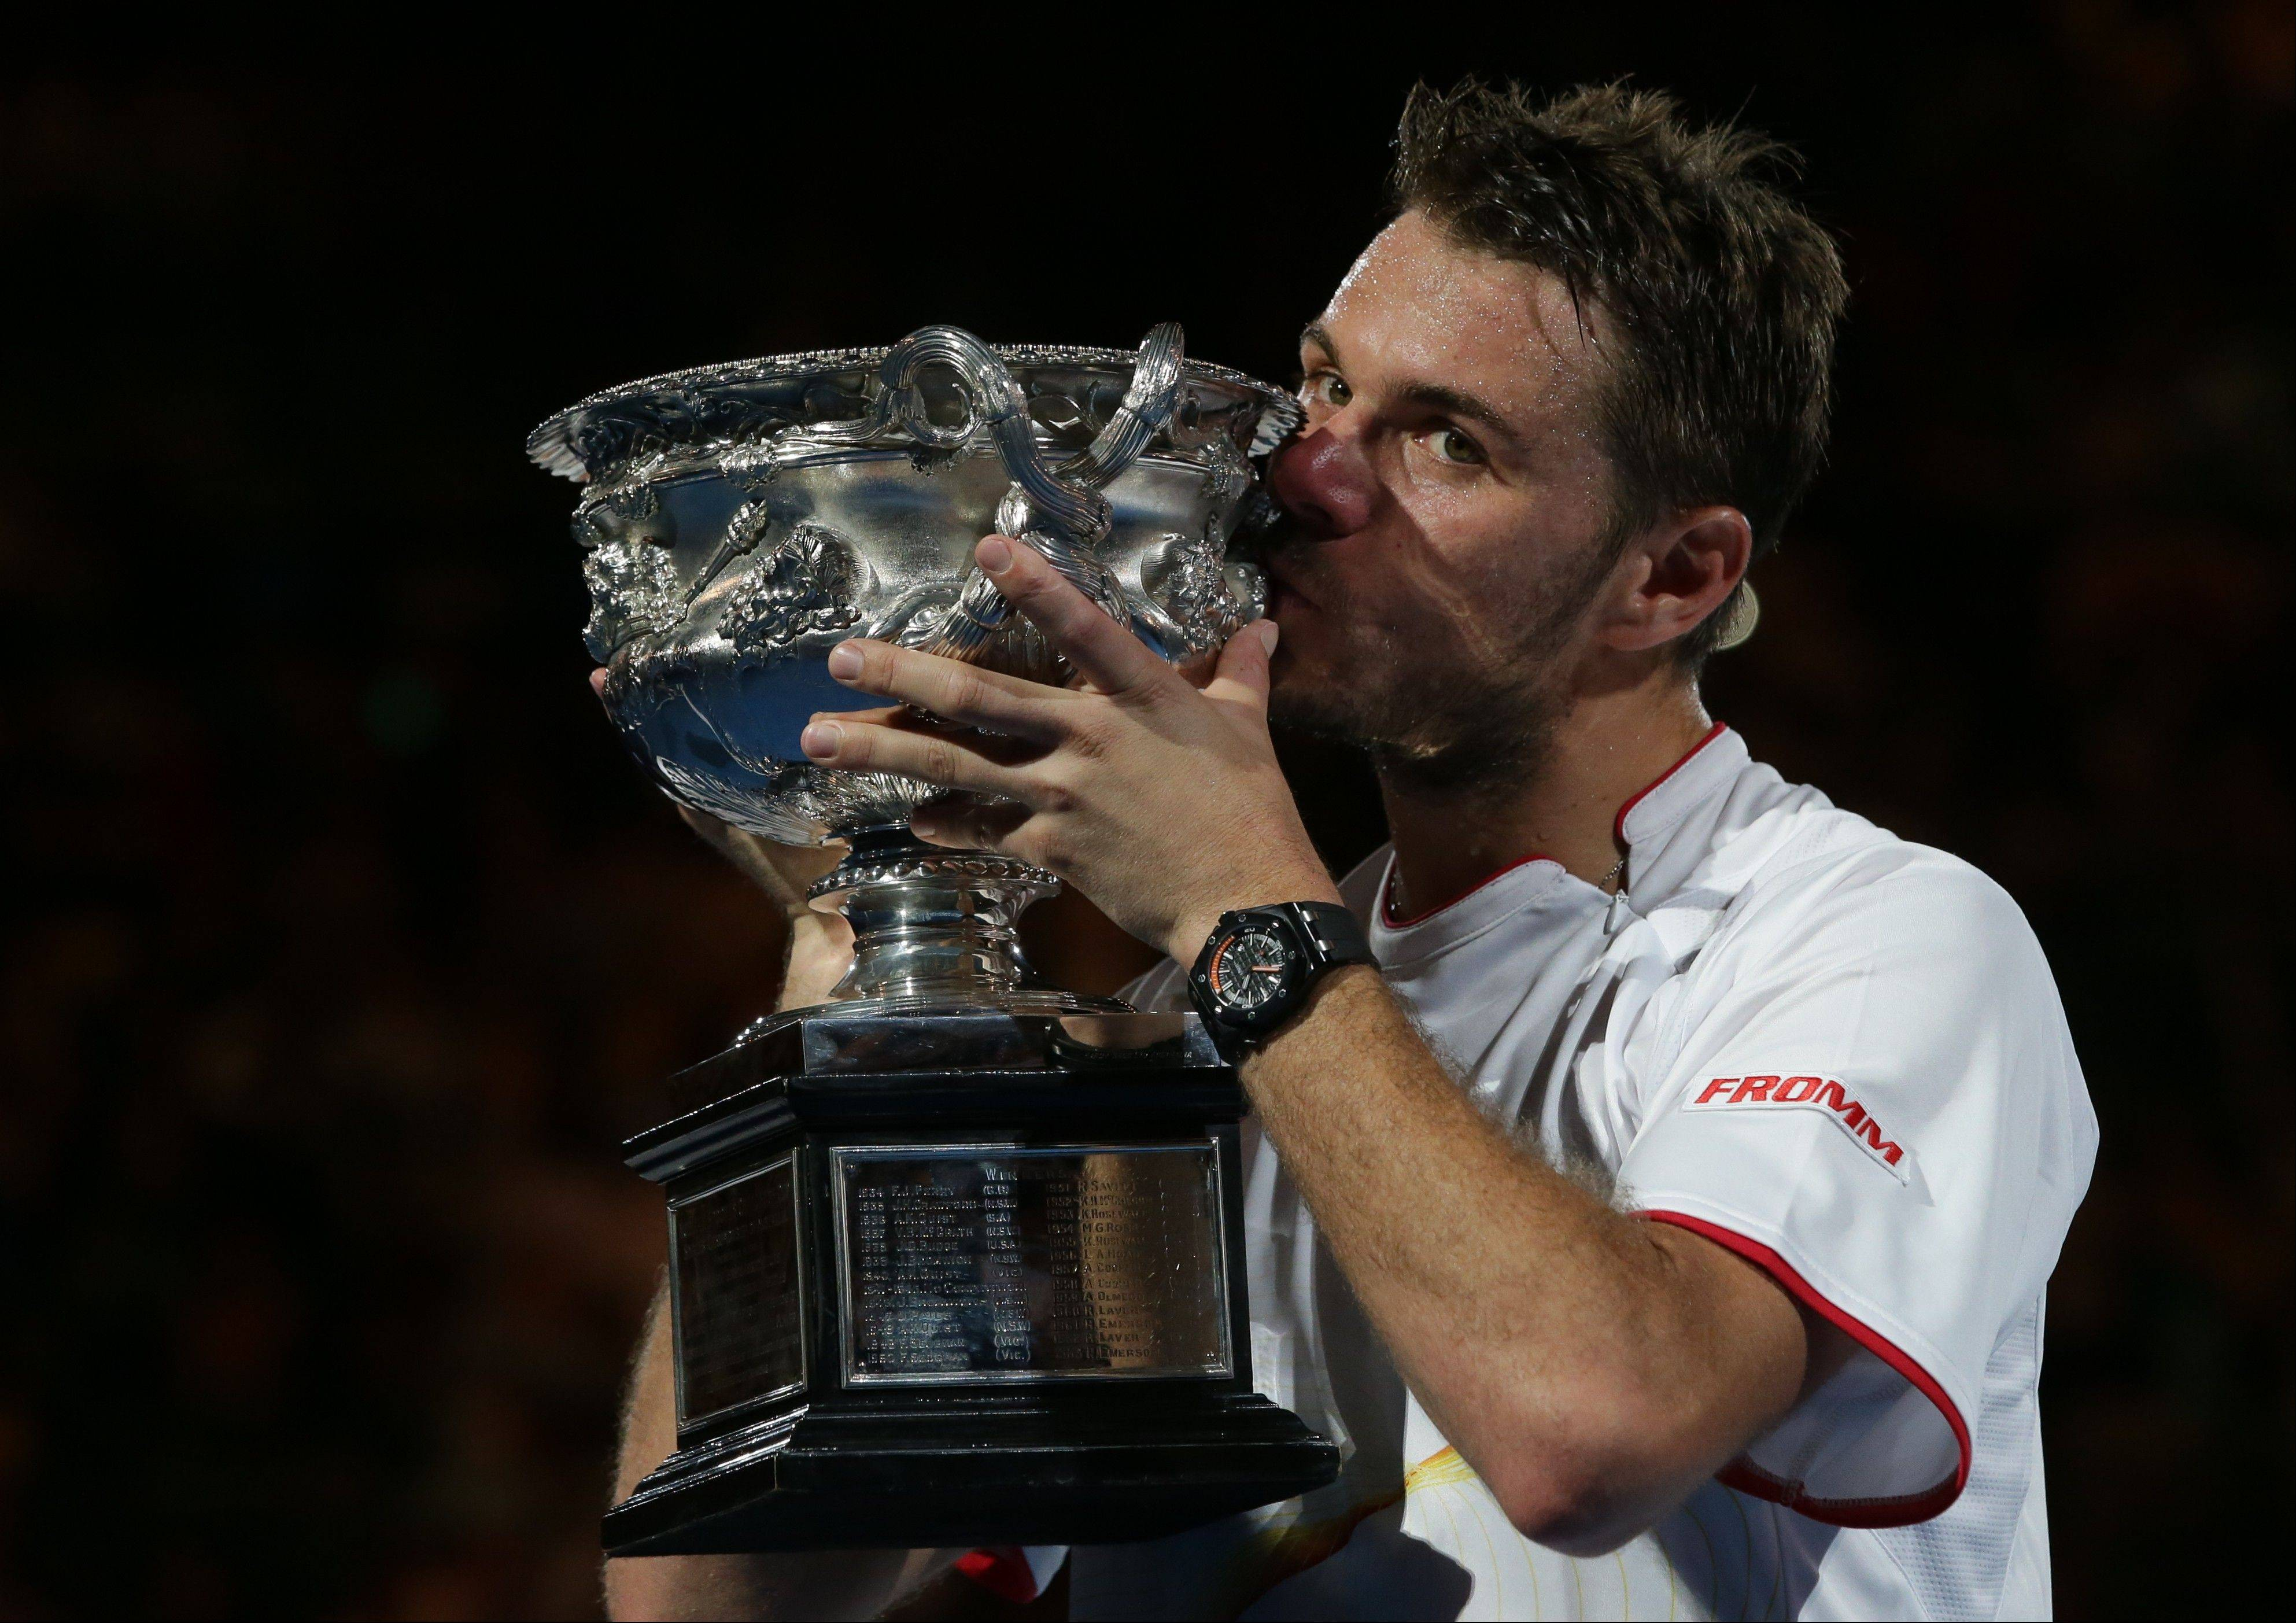 Stanislas Wawrinka of Switzerland kisses the trophy after defeating Rafael Nadal of Spain in the men�s singles final at the Australian Open tennis championship in Melbourne, Australia, Sunday.